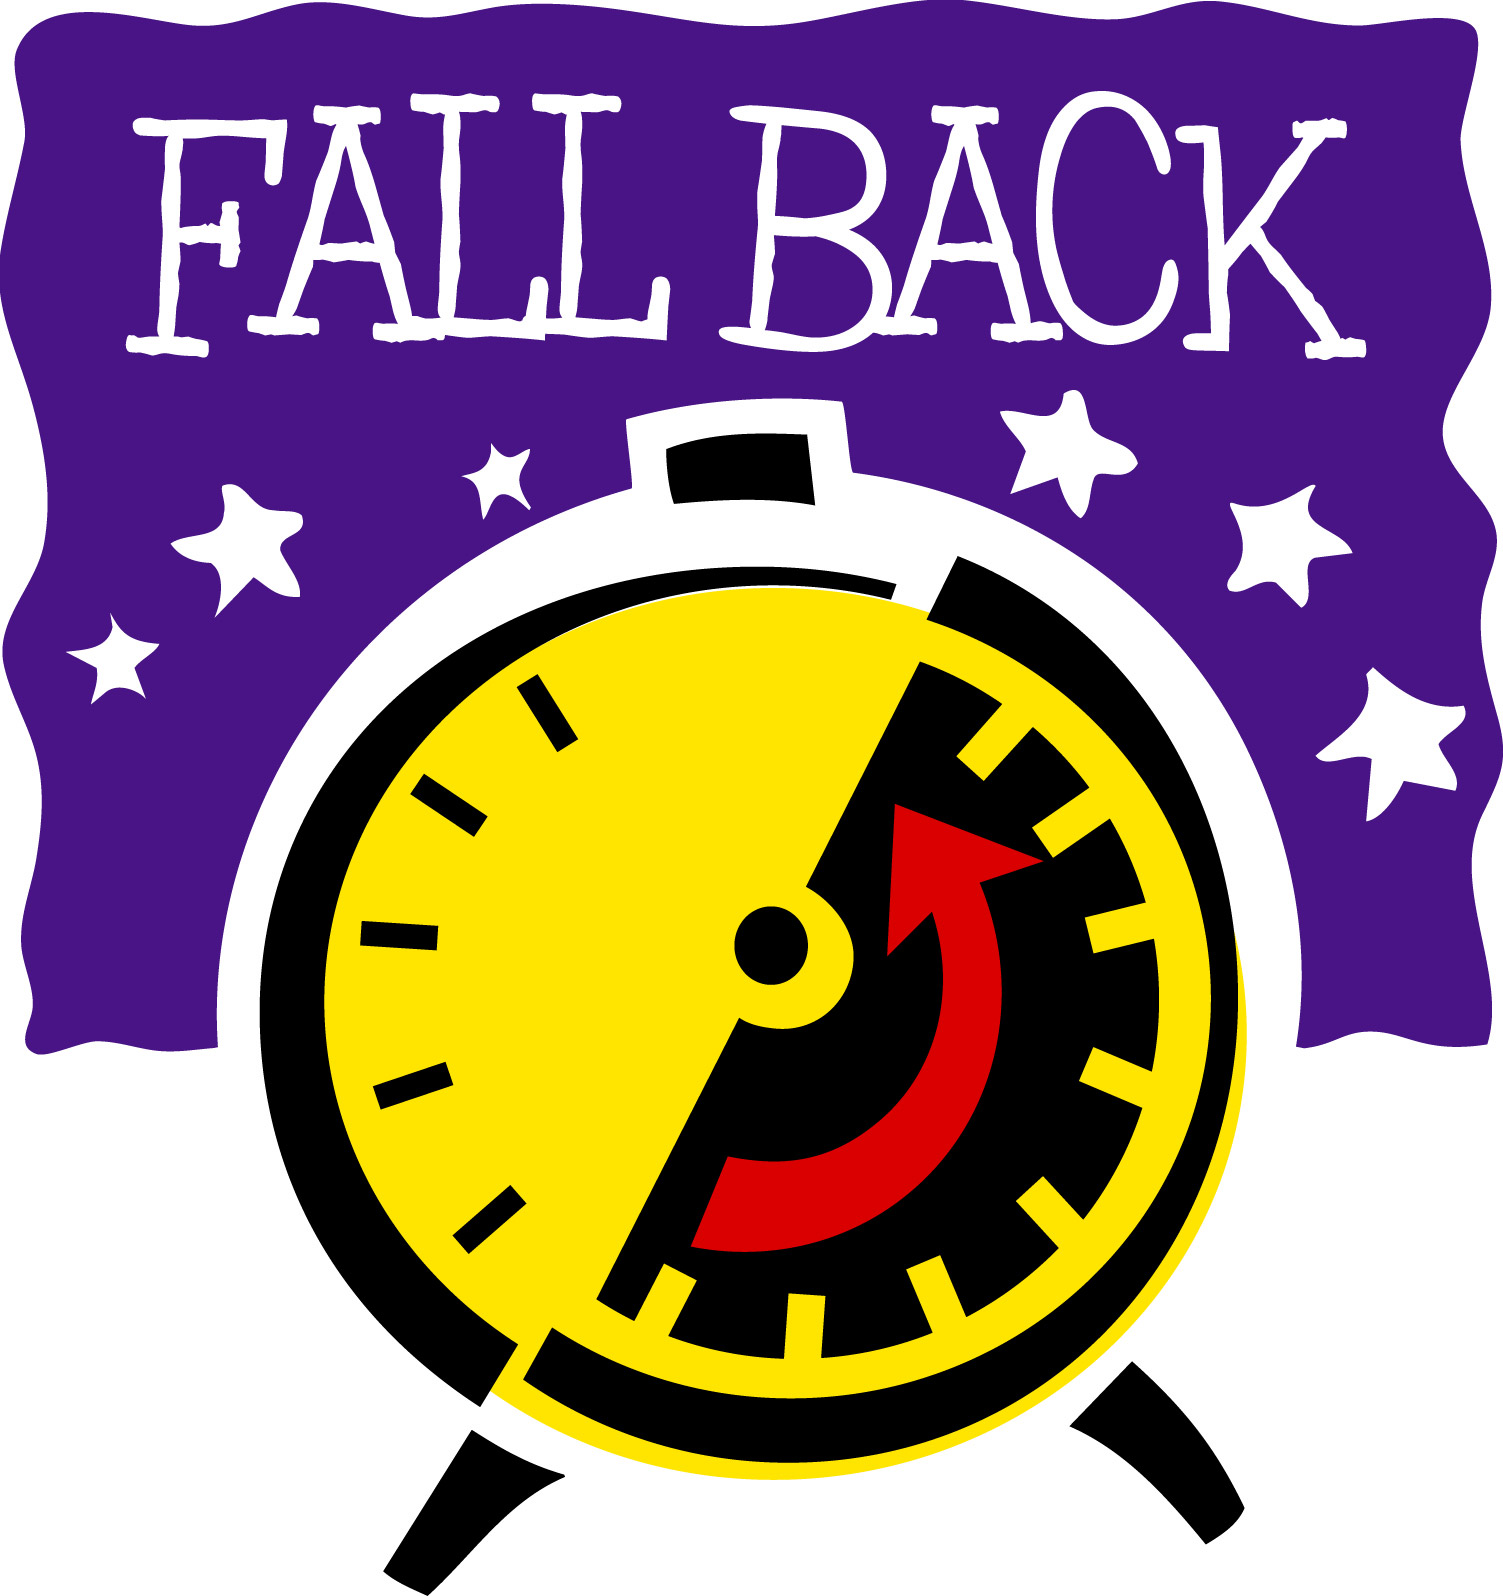 Daylight Savings Time Clipart Cliparts Co. 0605b5a8e3aabcec80229b3ff94ab3 .